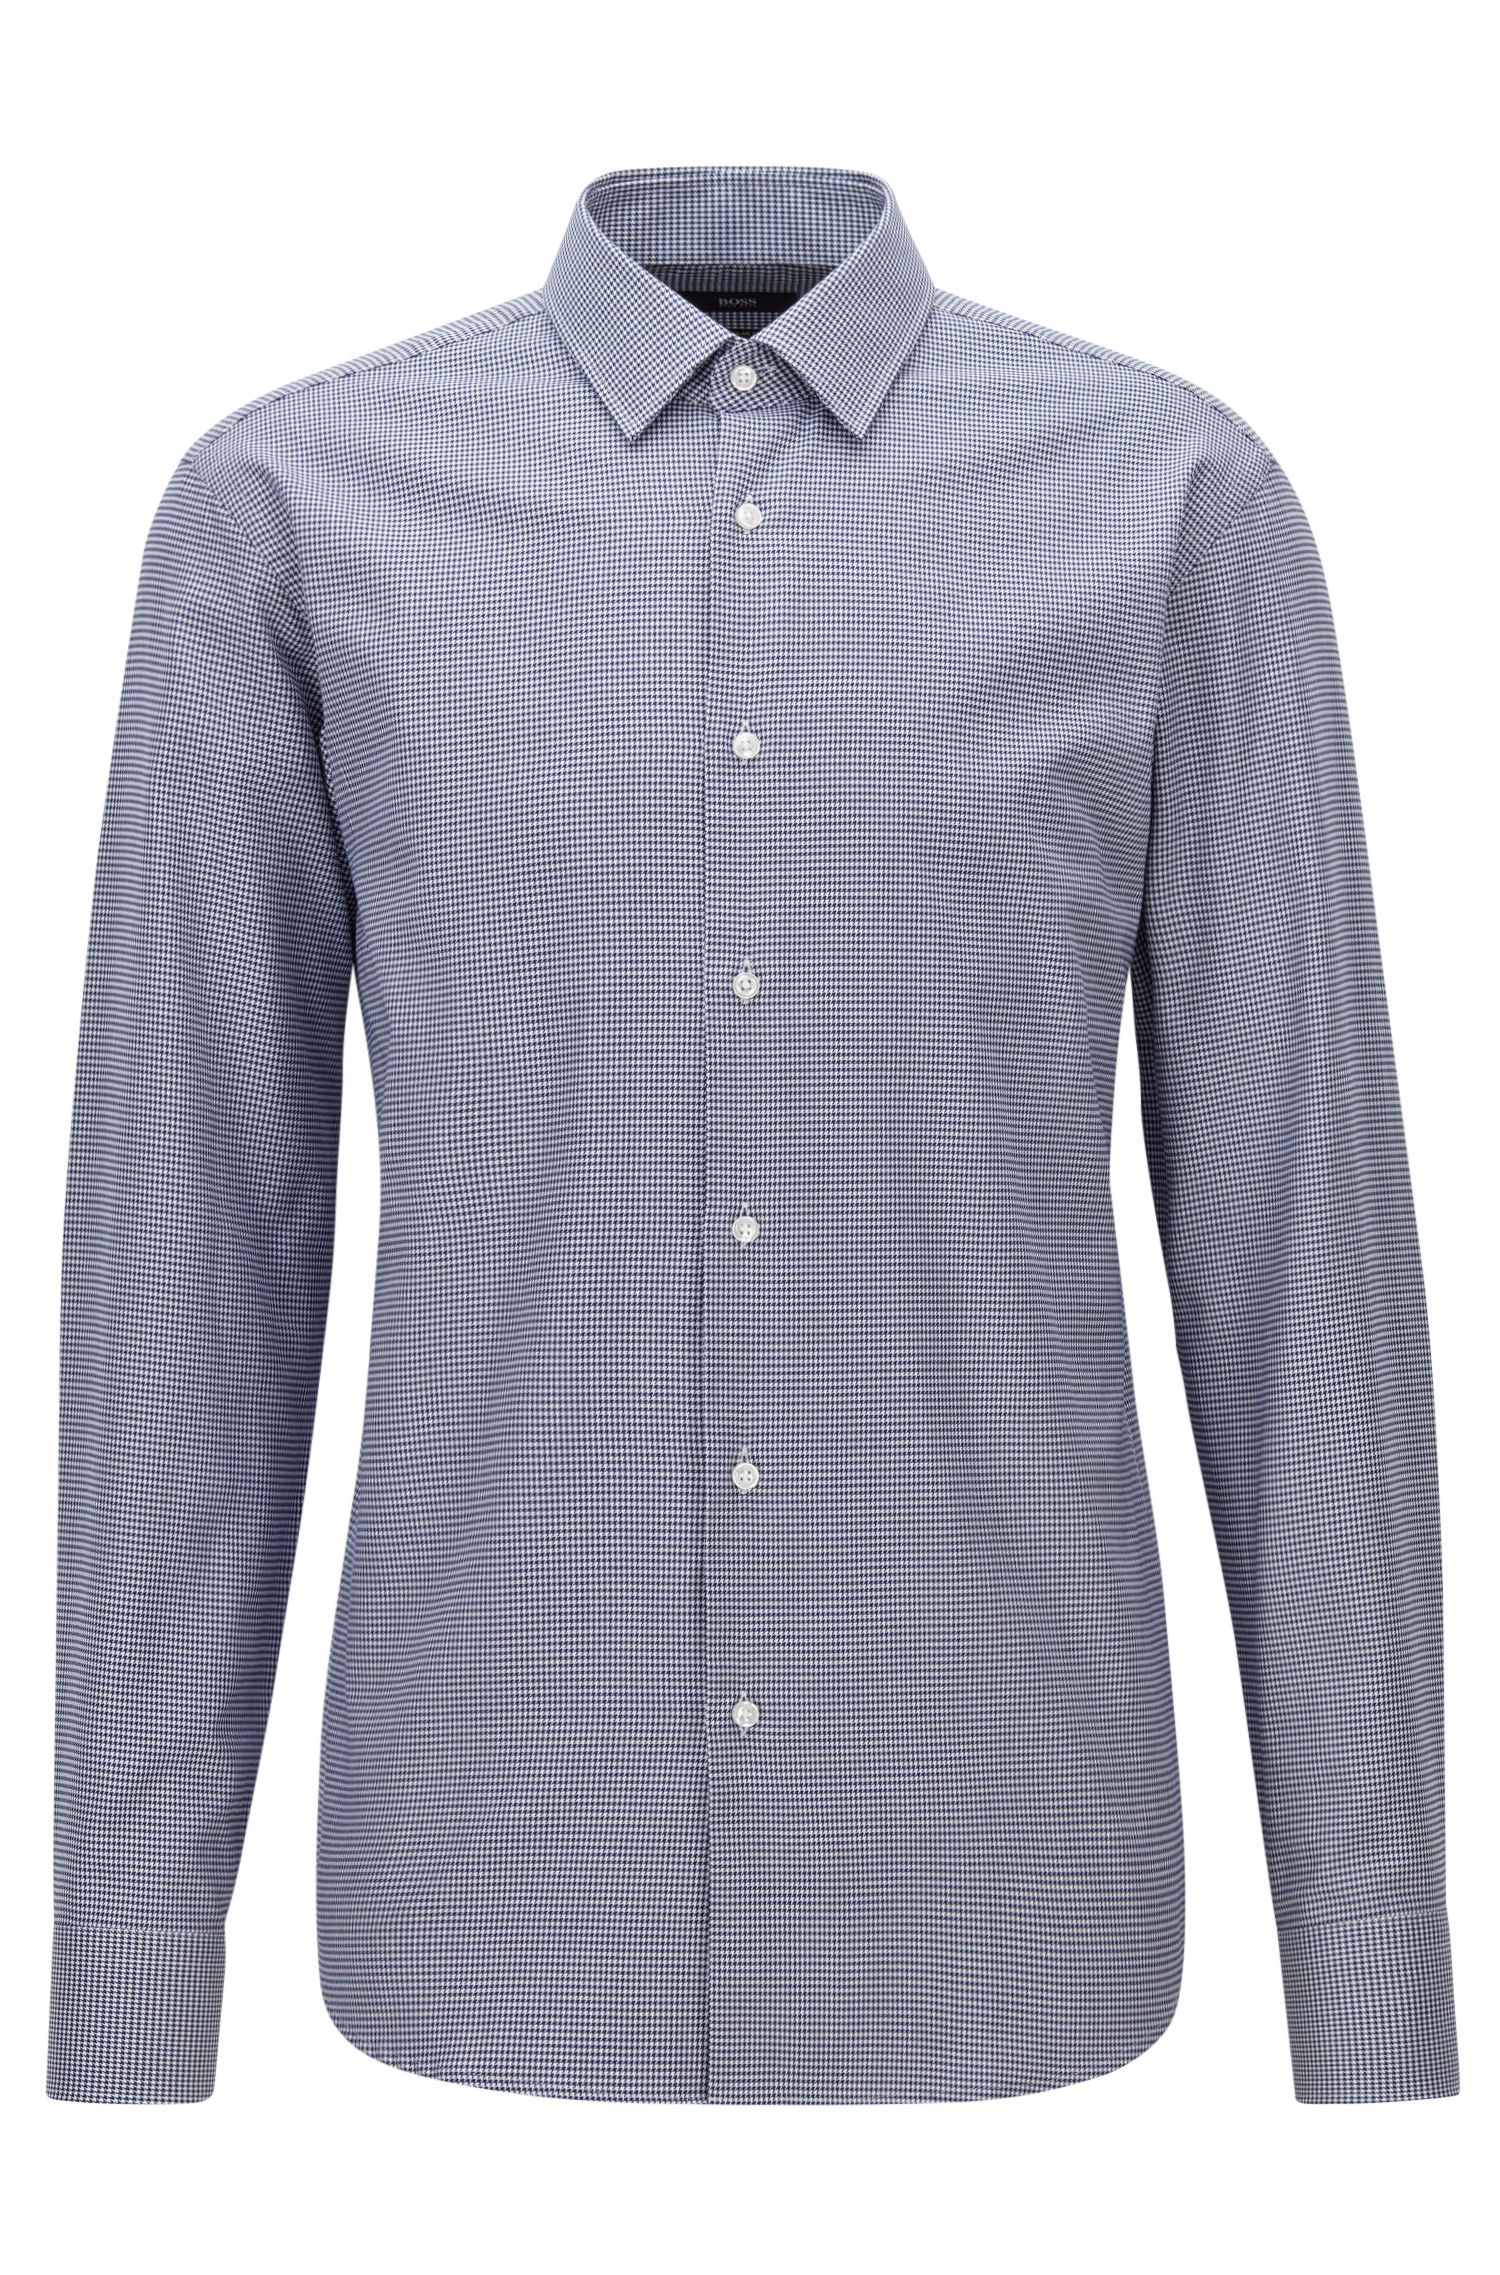 Houndstooth cotton shirt in a regular fit